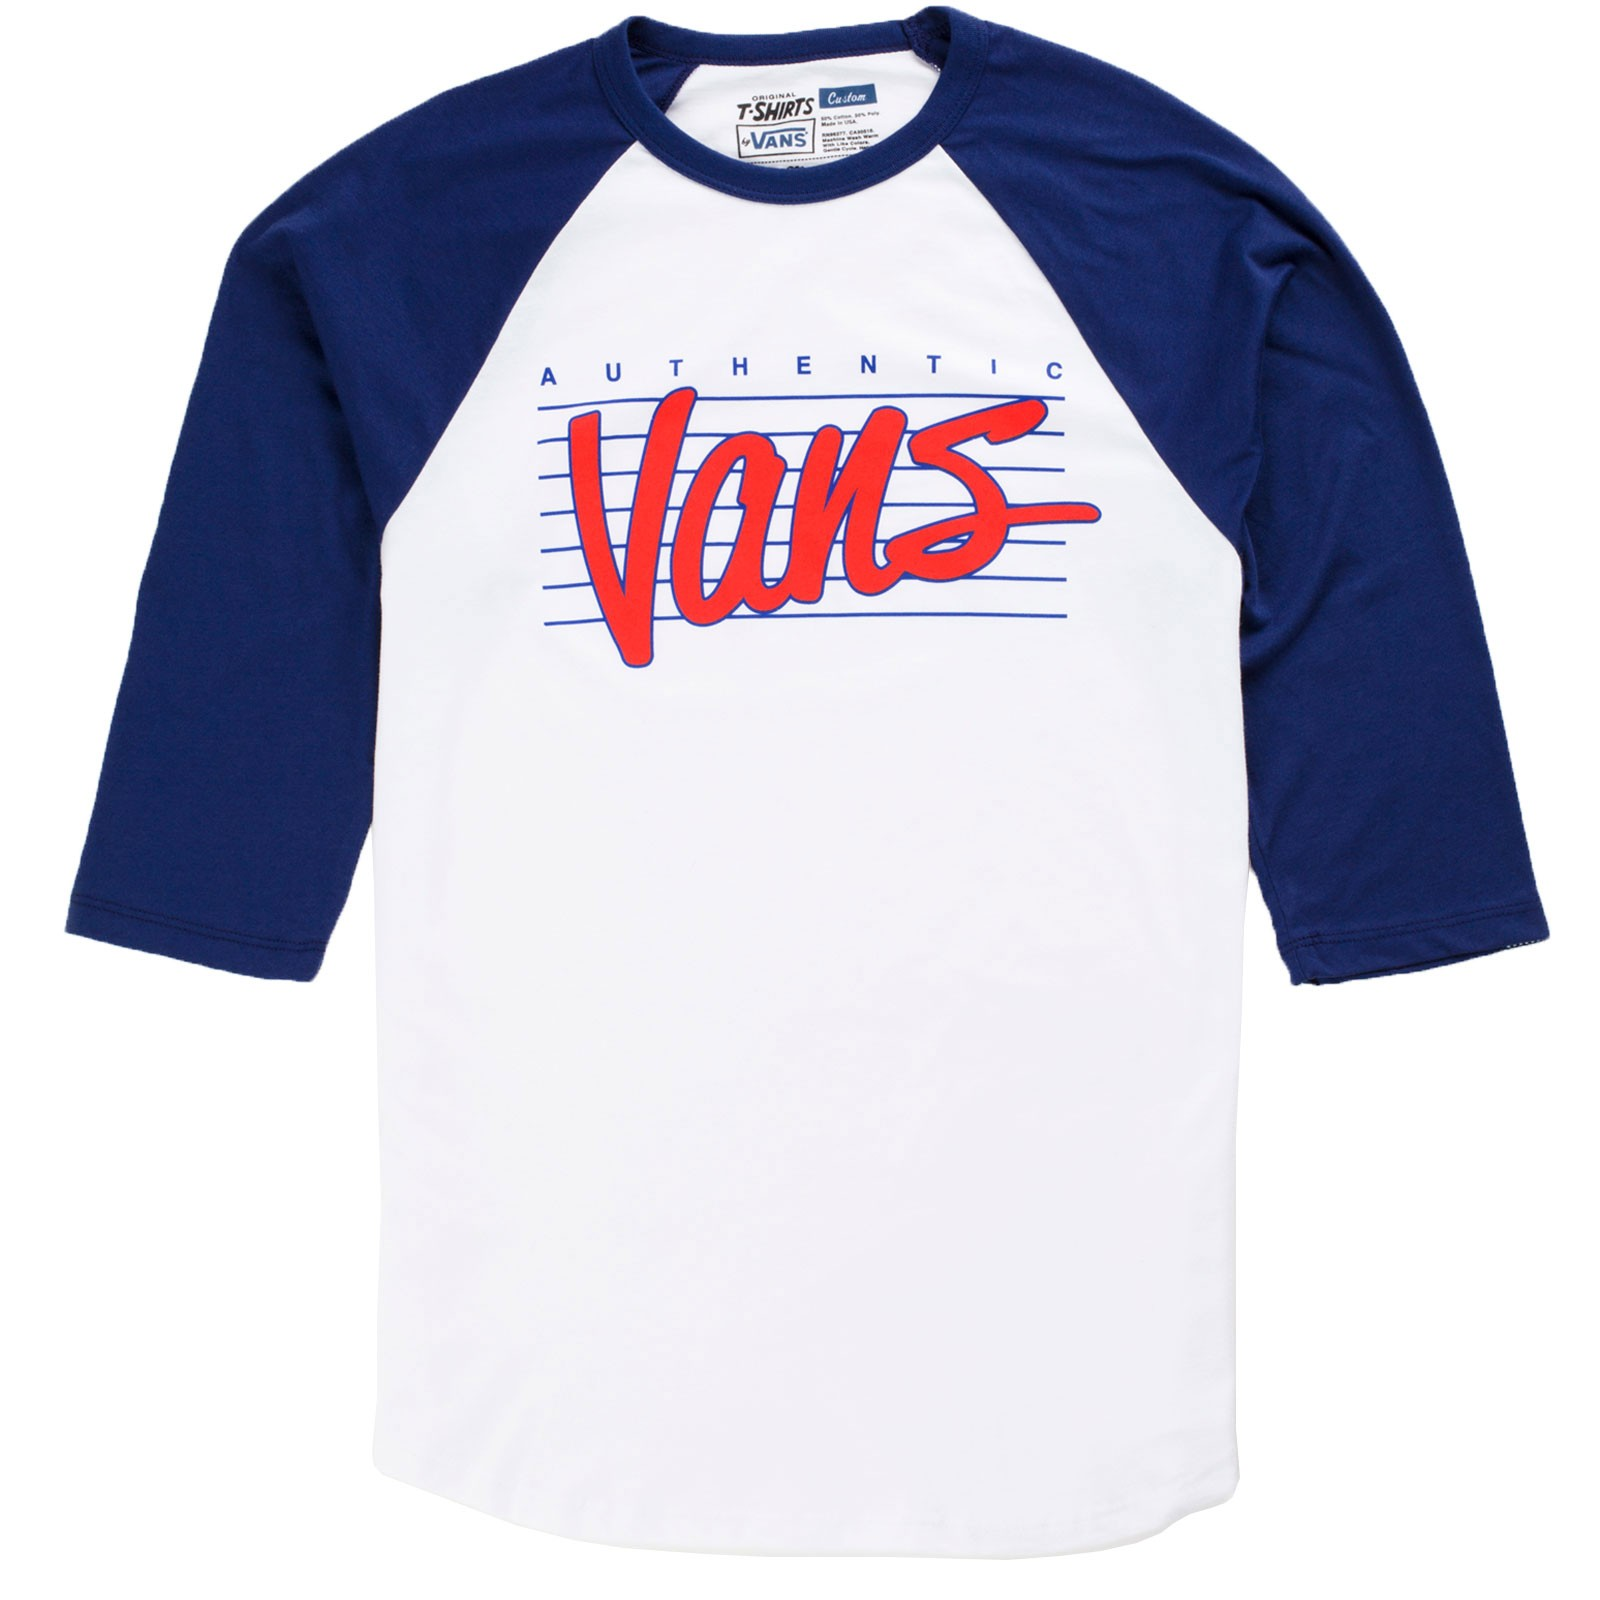 Vans Authentic Raglan Youth T-Shirt - White/Blueprint